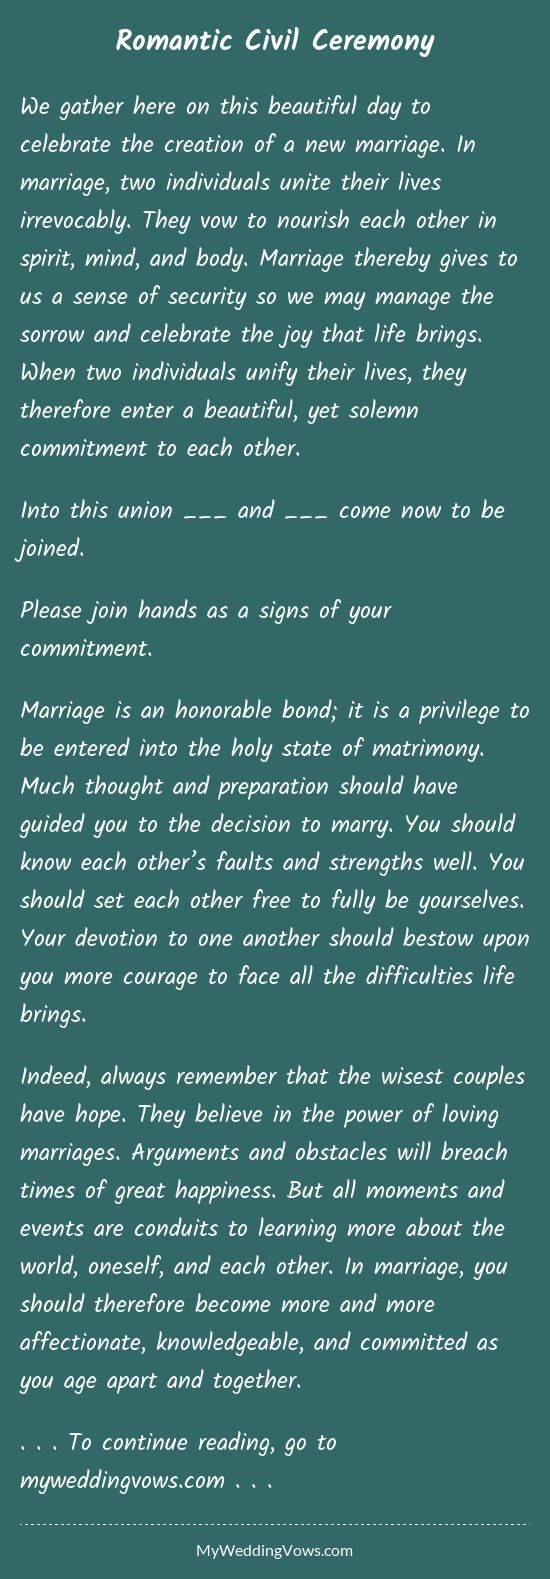 We gather here on this beautiful day to celebrate the creation of a new marriage. In marriage, two individuals unite their lives irrevocably. They vow to nourish each other in spirit, mind, and body. Marriage thereby gives to us a sense of security...